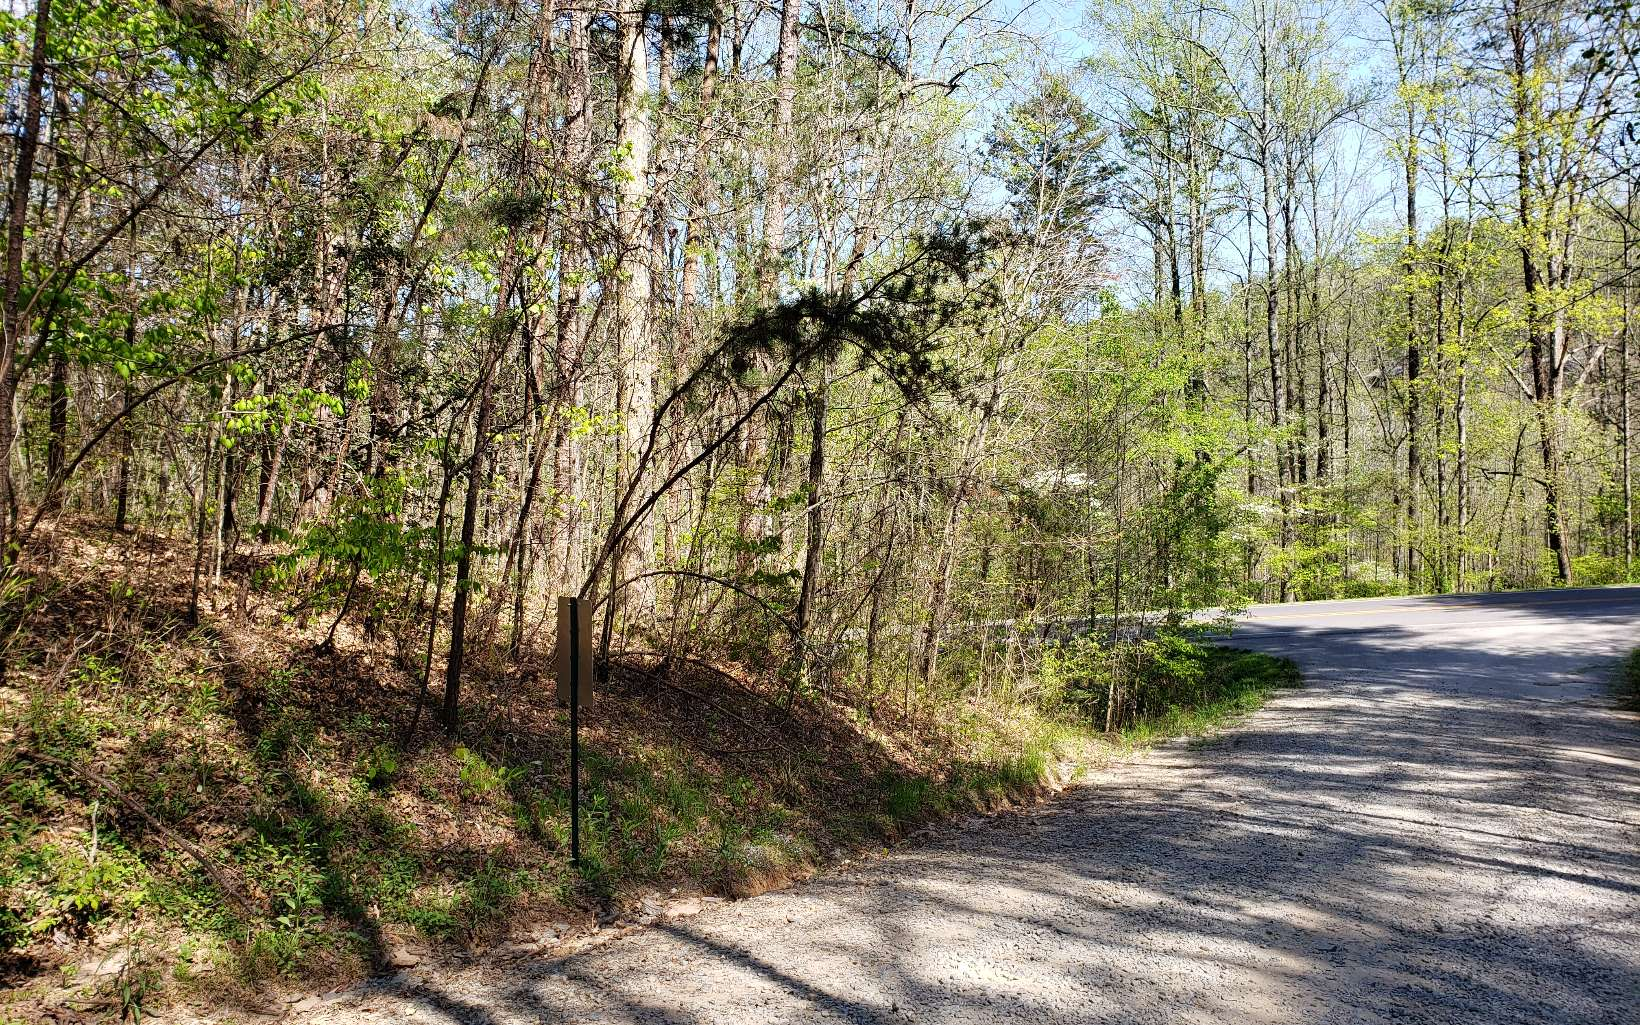 VERY AFFORDABLE with Easy Accessibility to McCaysville & Blue Ridge. All paved Access. 1.39 Acres of gentle wooded land. Close to Whitewater Rafting, Tubing, Horseback Riding, Harrah's Casino and much more. BUY, BUY, BUY!!!